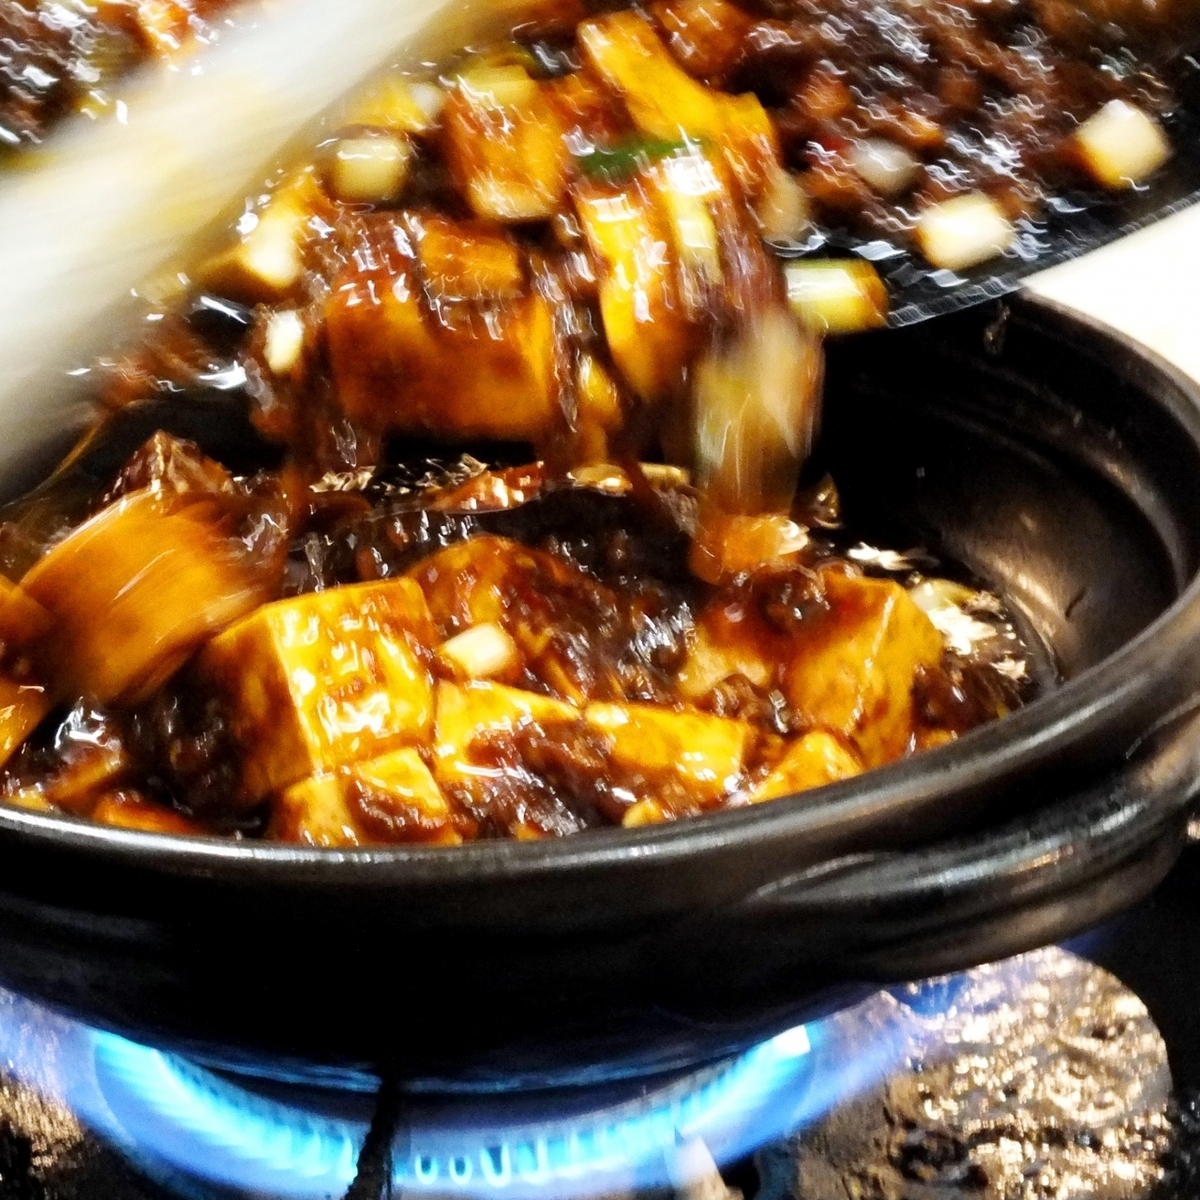 A cuisine of famous fire chef Mr. Zhumitomi Tokido is here!